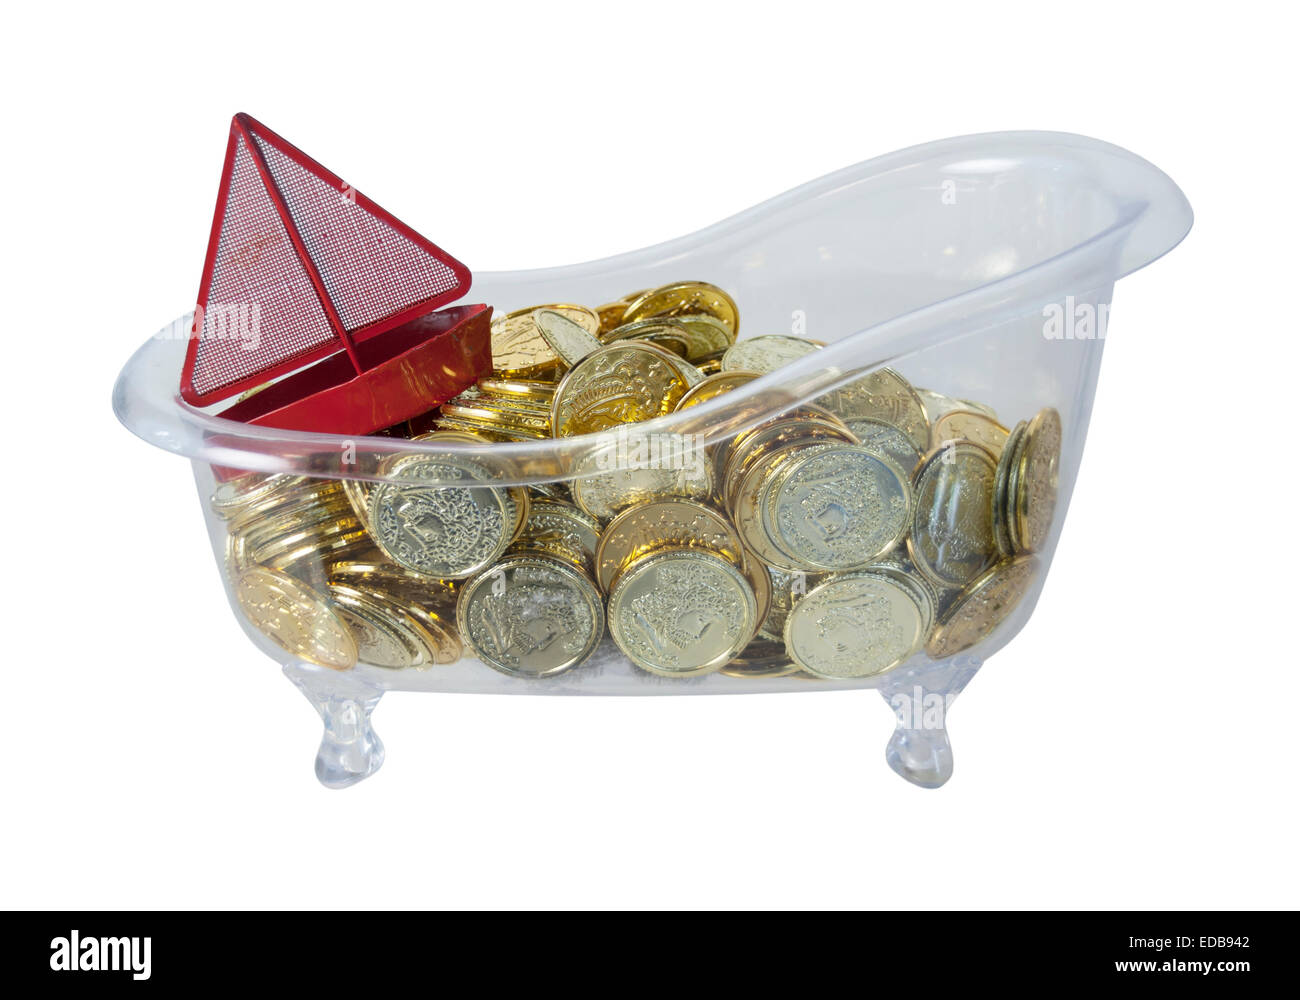 Bathtub Filled With Gold Coins Of Riches And A Red Boat   Path Included    Stock